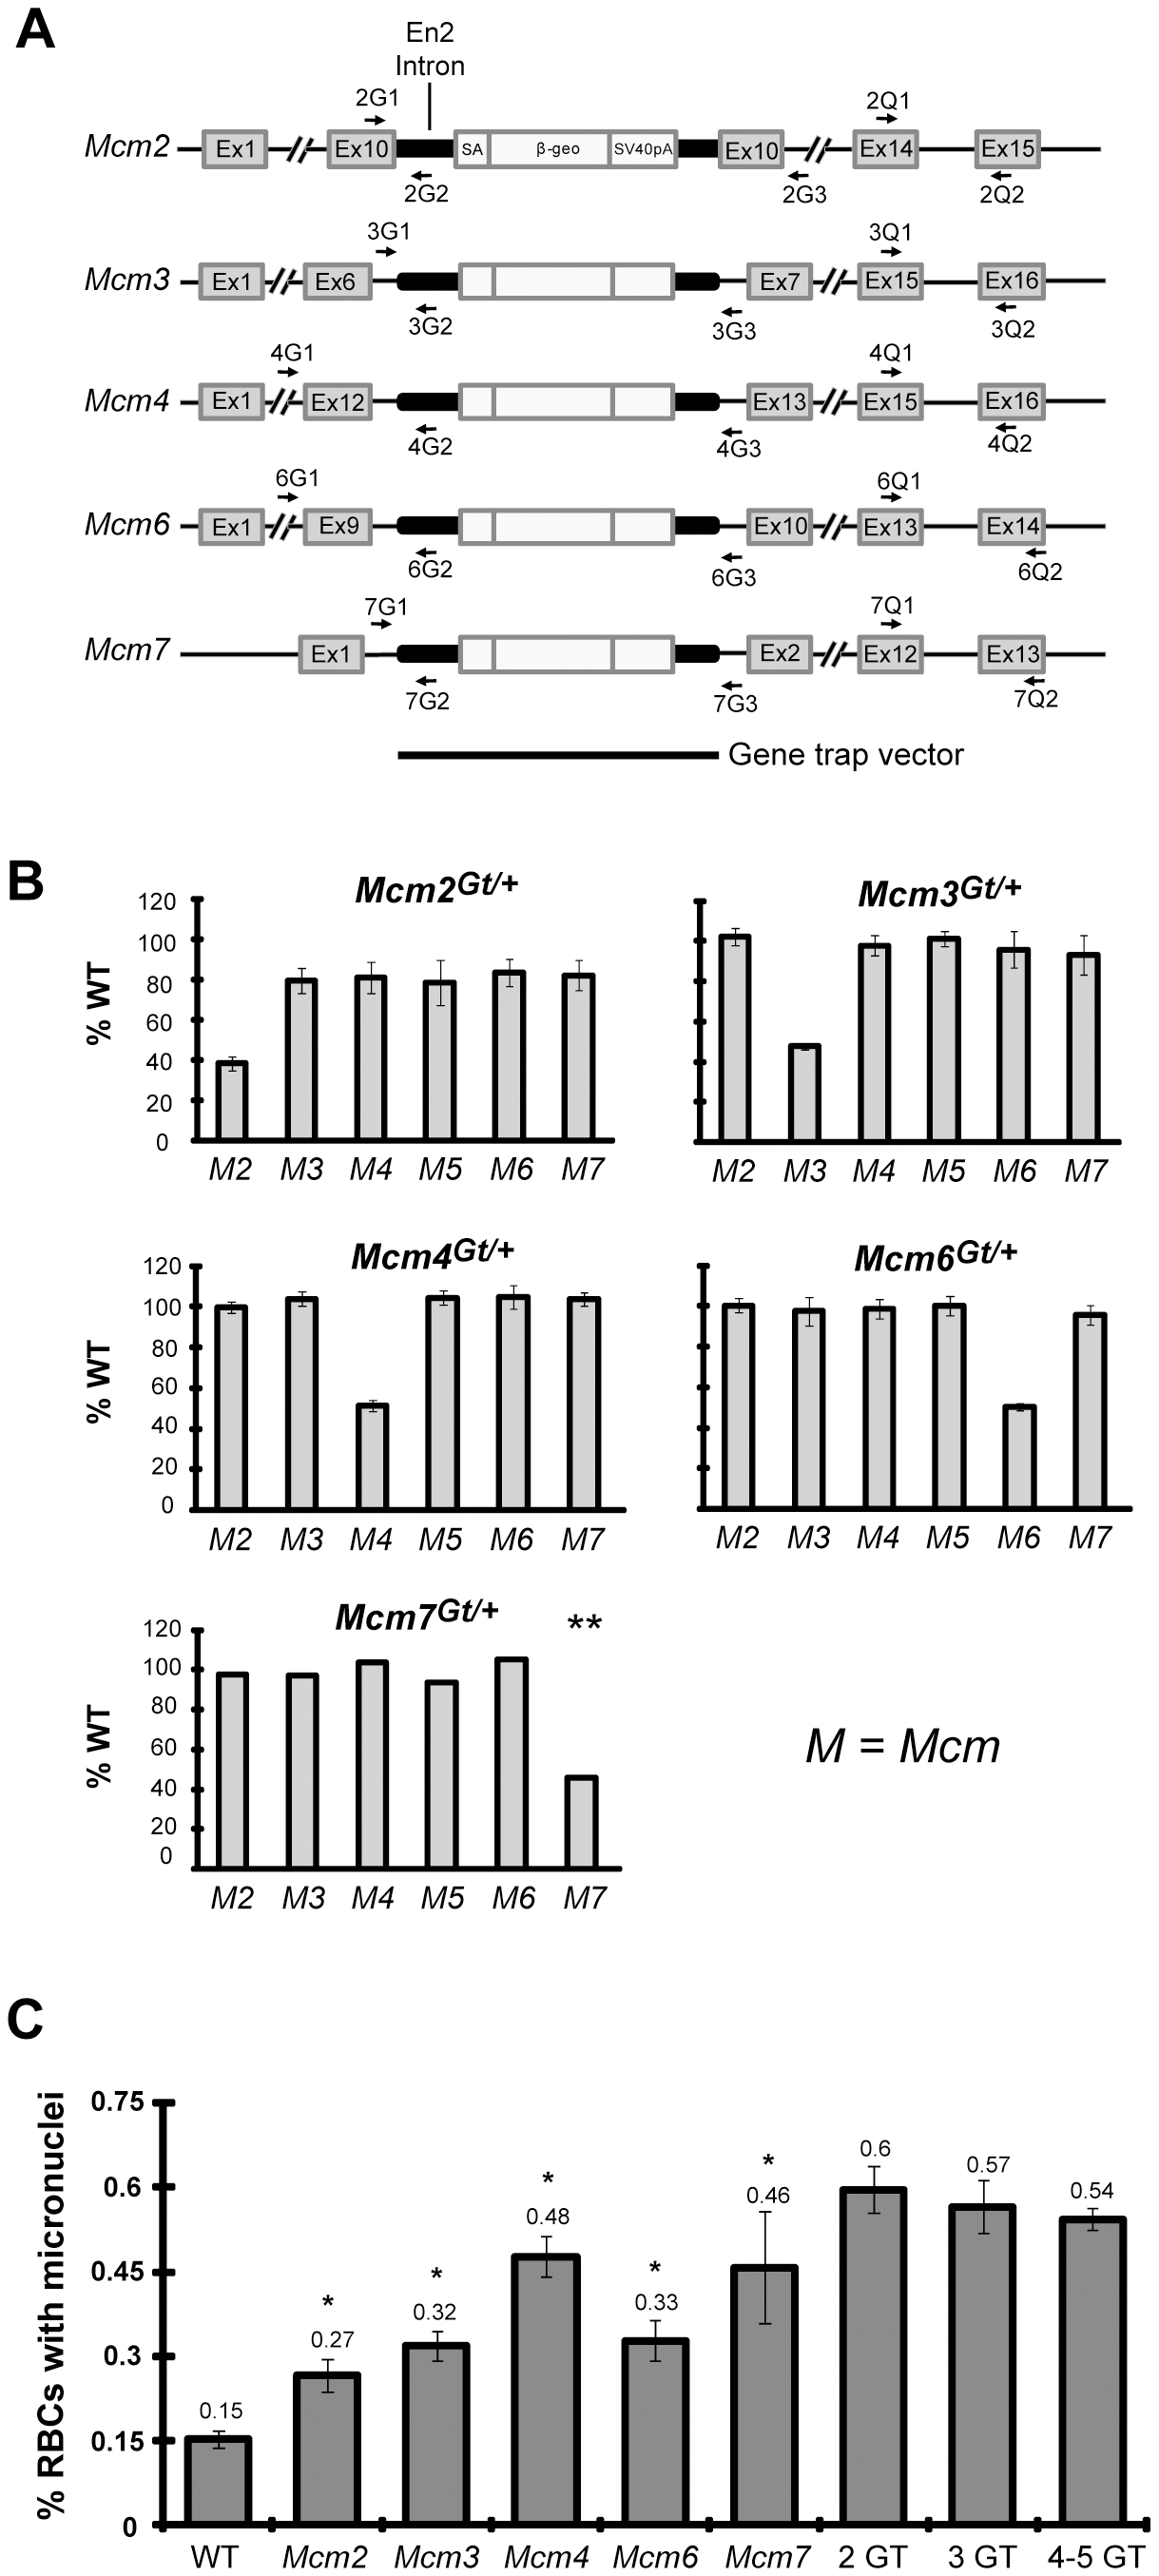 Mcm gene trap alleles and associated mRNA levels, peripheral blood micronuclei, and cancer frequency.